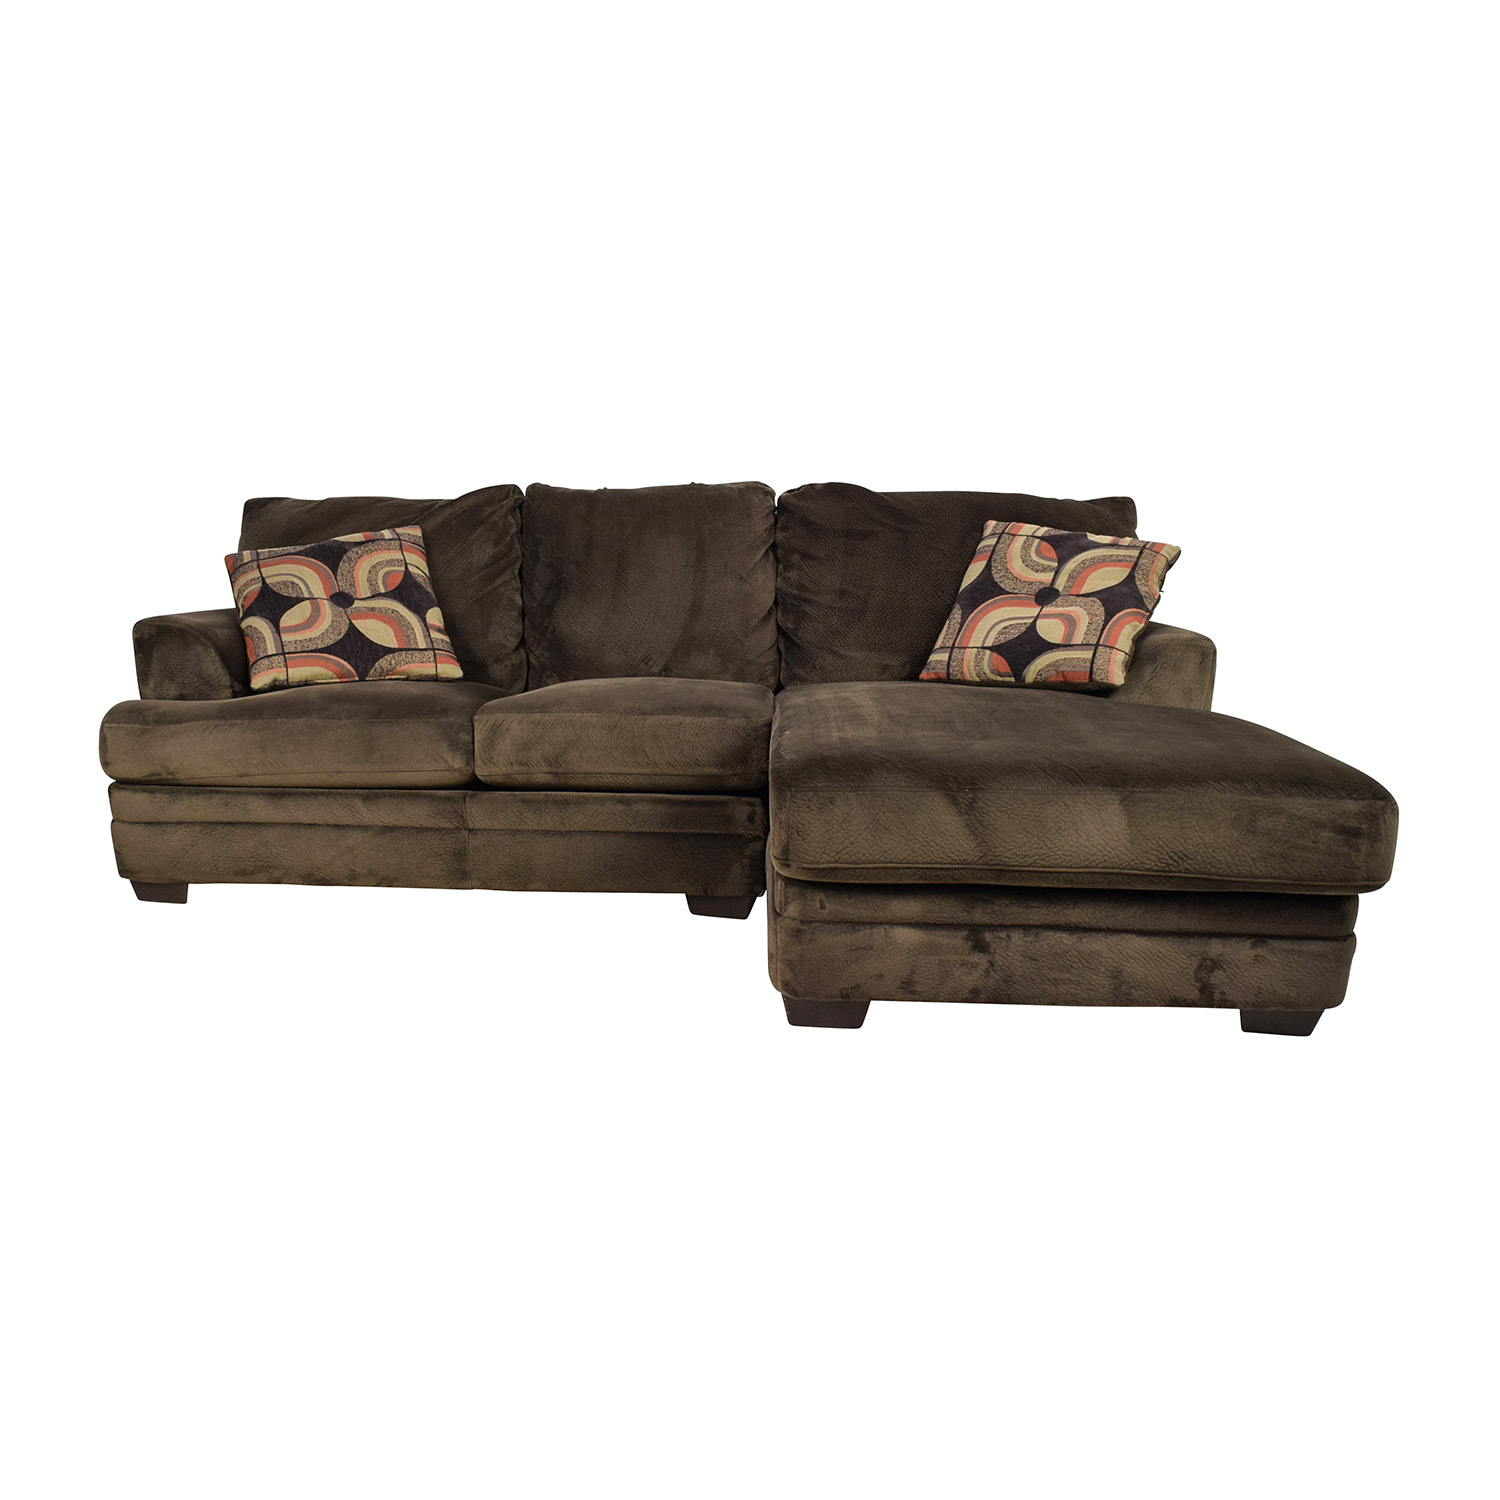 94 Living Room Furniture Bobs Melanie Sofa Loveseat